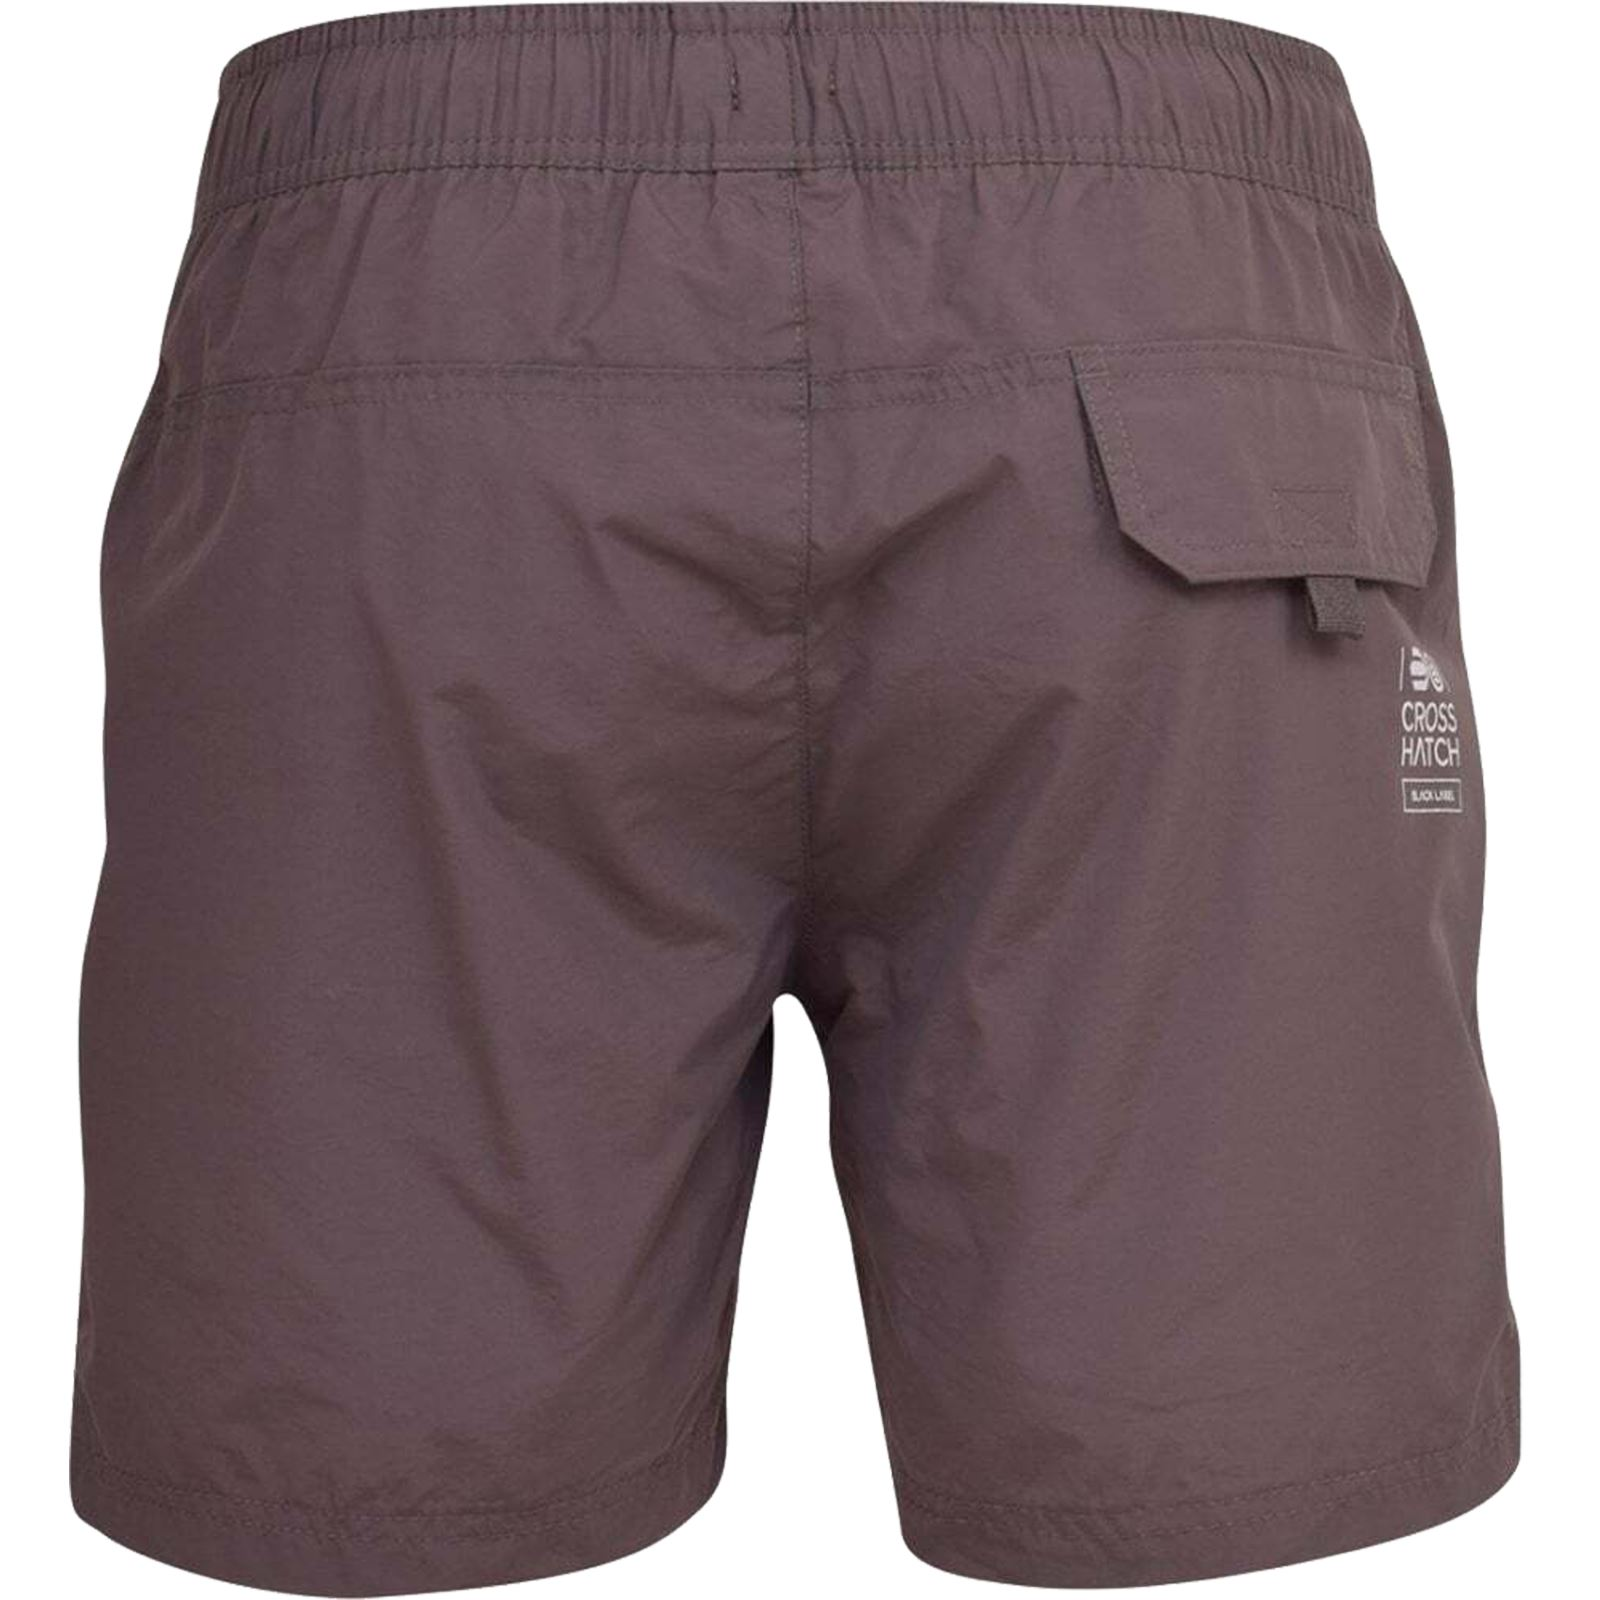 Mens-Crosshatch-Shorts-Drawcord-Mesh-Lined-Designer-Beach-Casual-Swimming-Trunks thumbnail 15